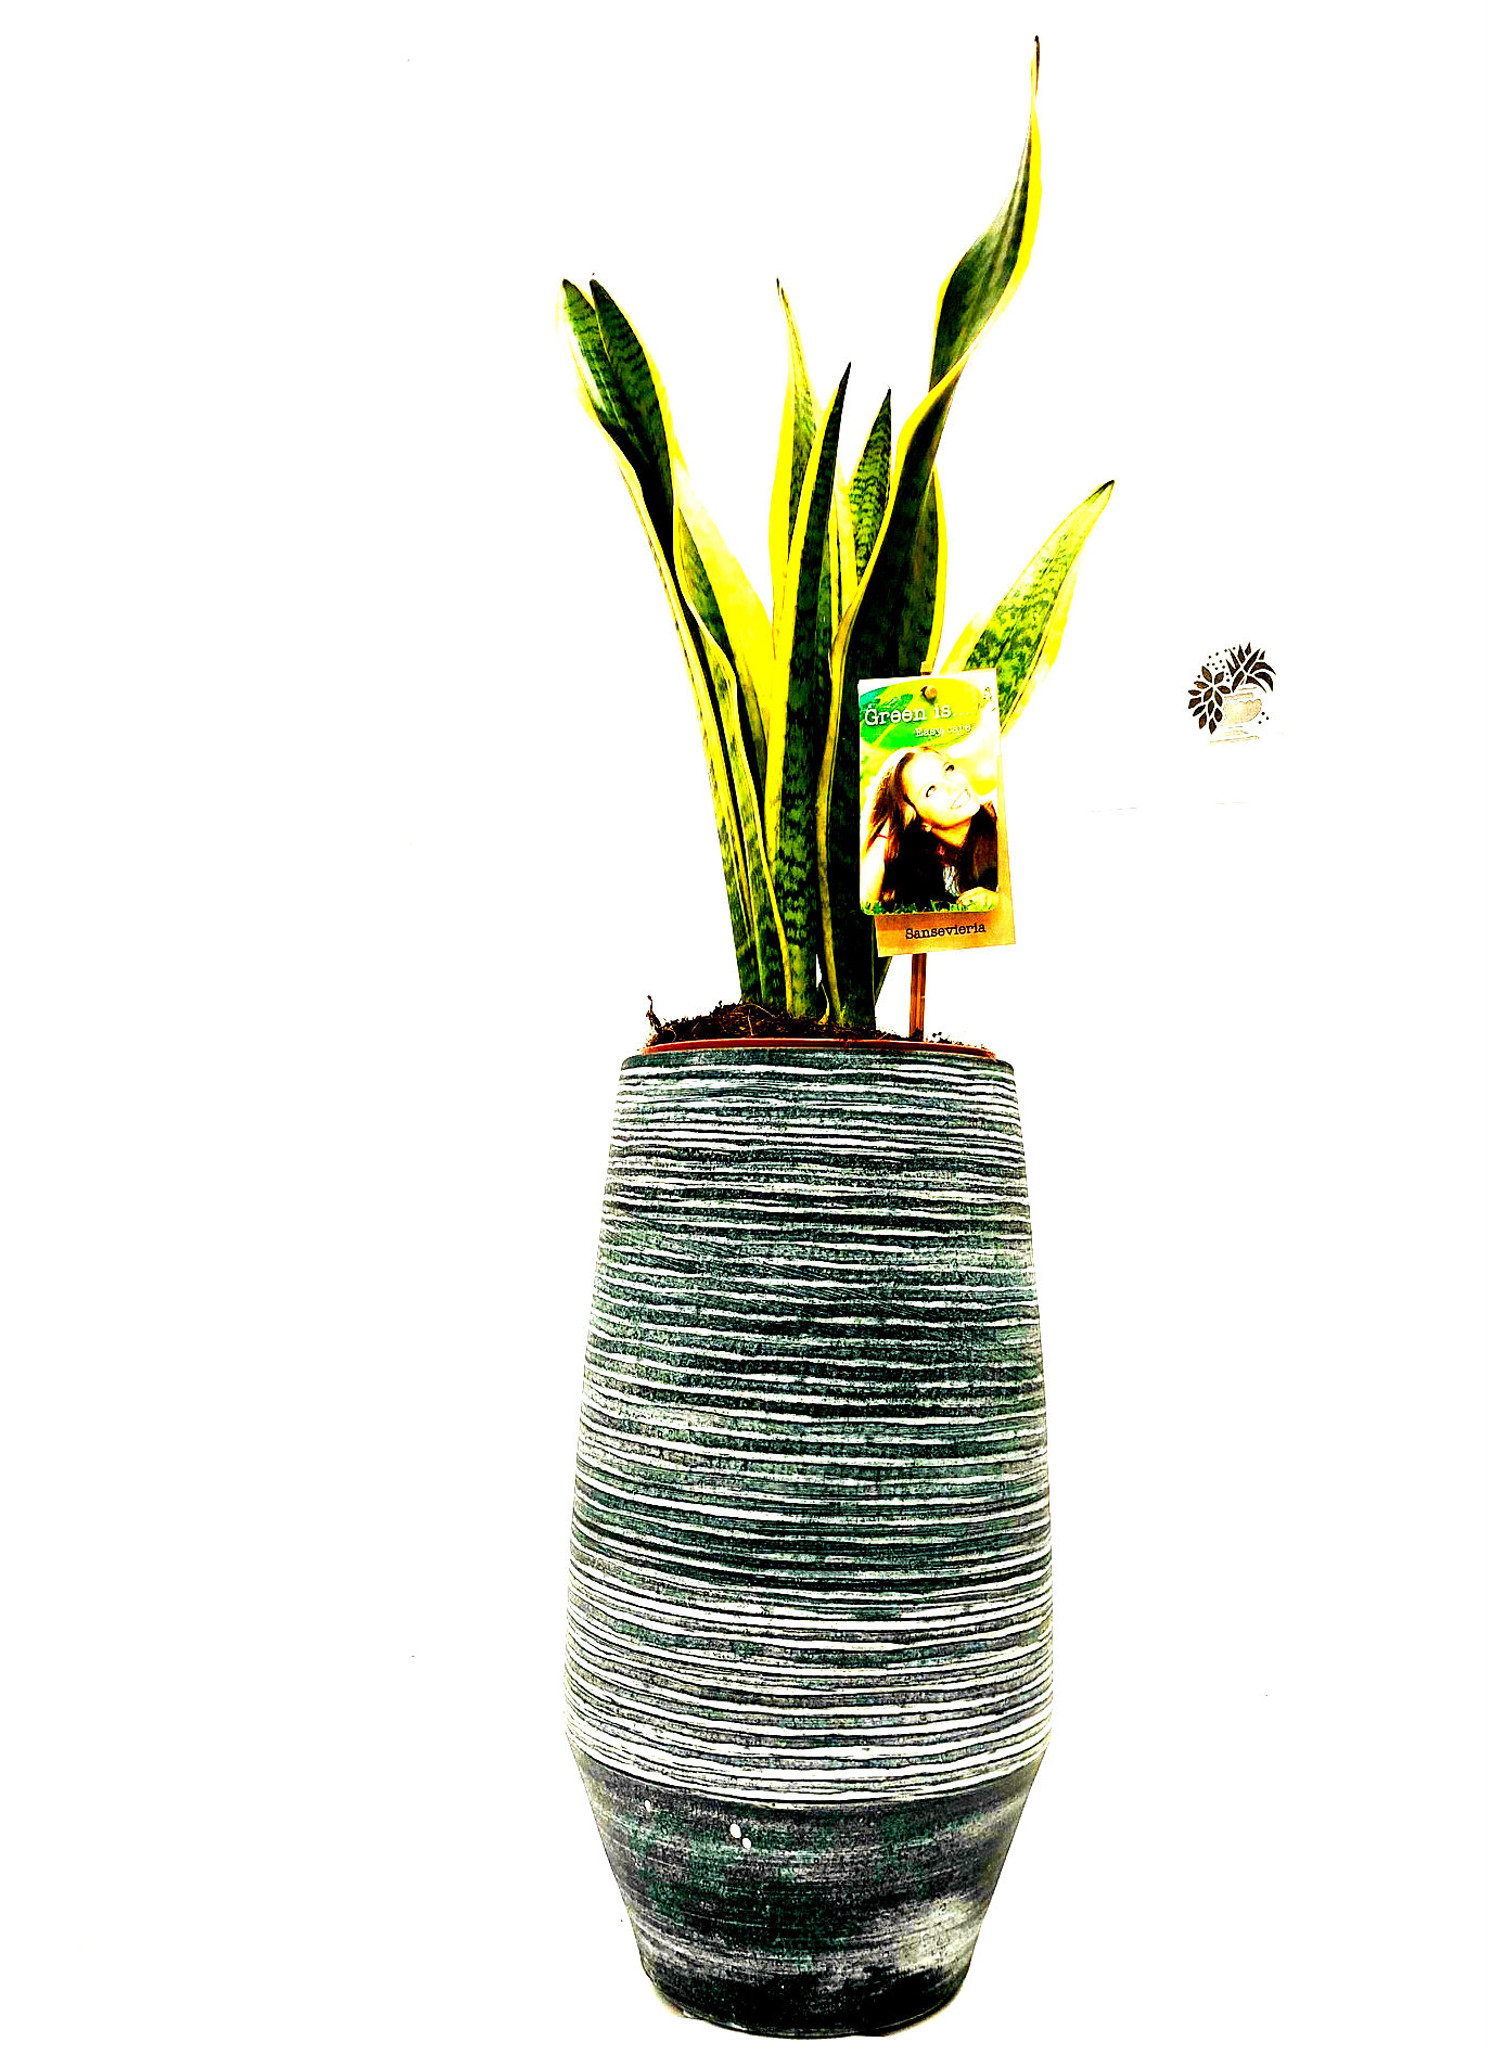 Other options : Large Mother's in law plant, sansevieria Mother's in law indoor houseplant in a tall ceramic handmade planter